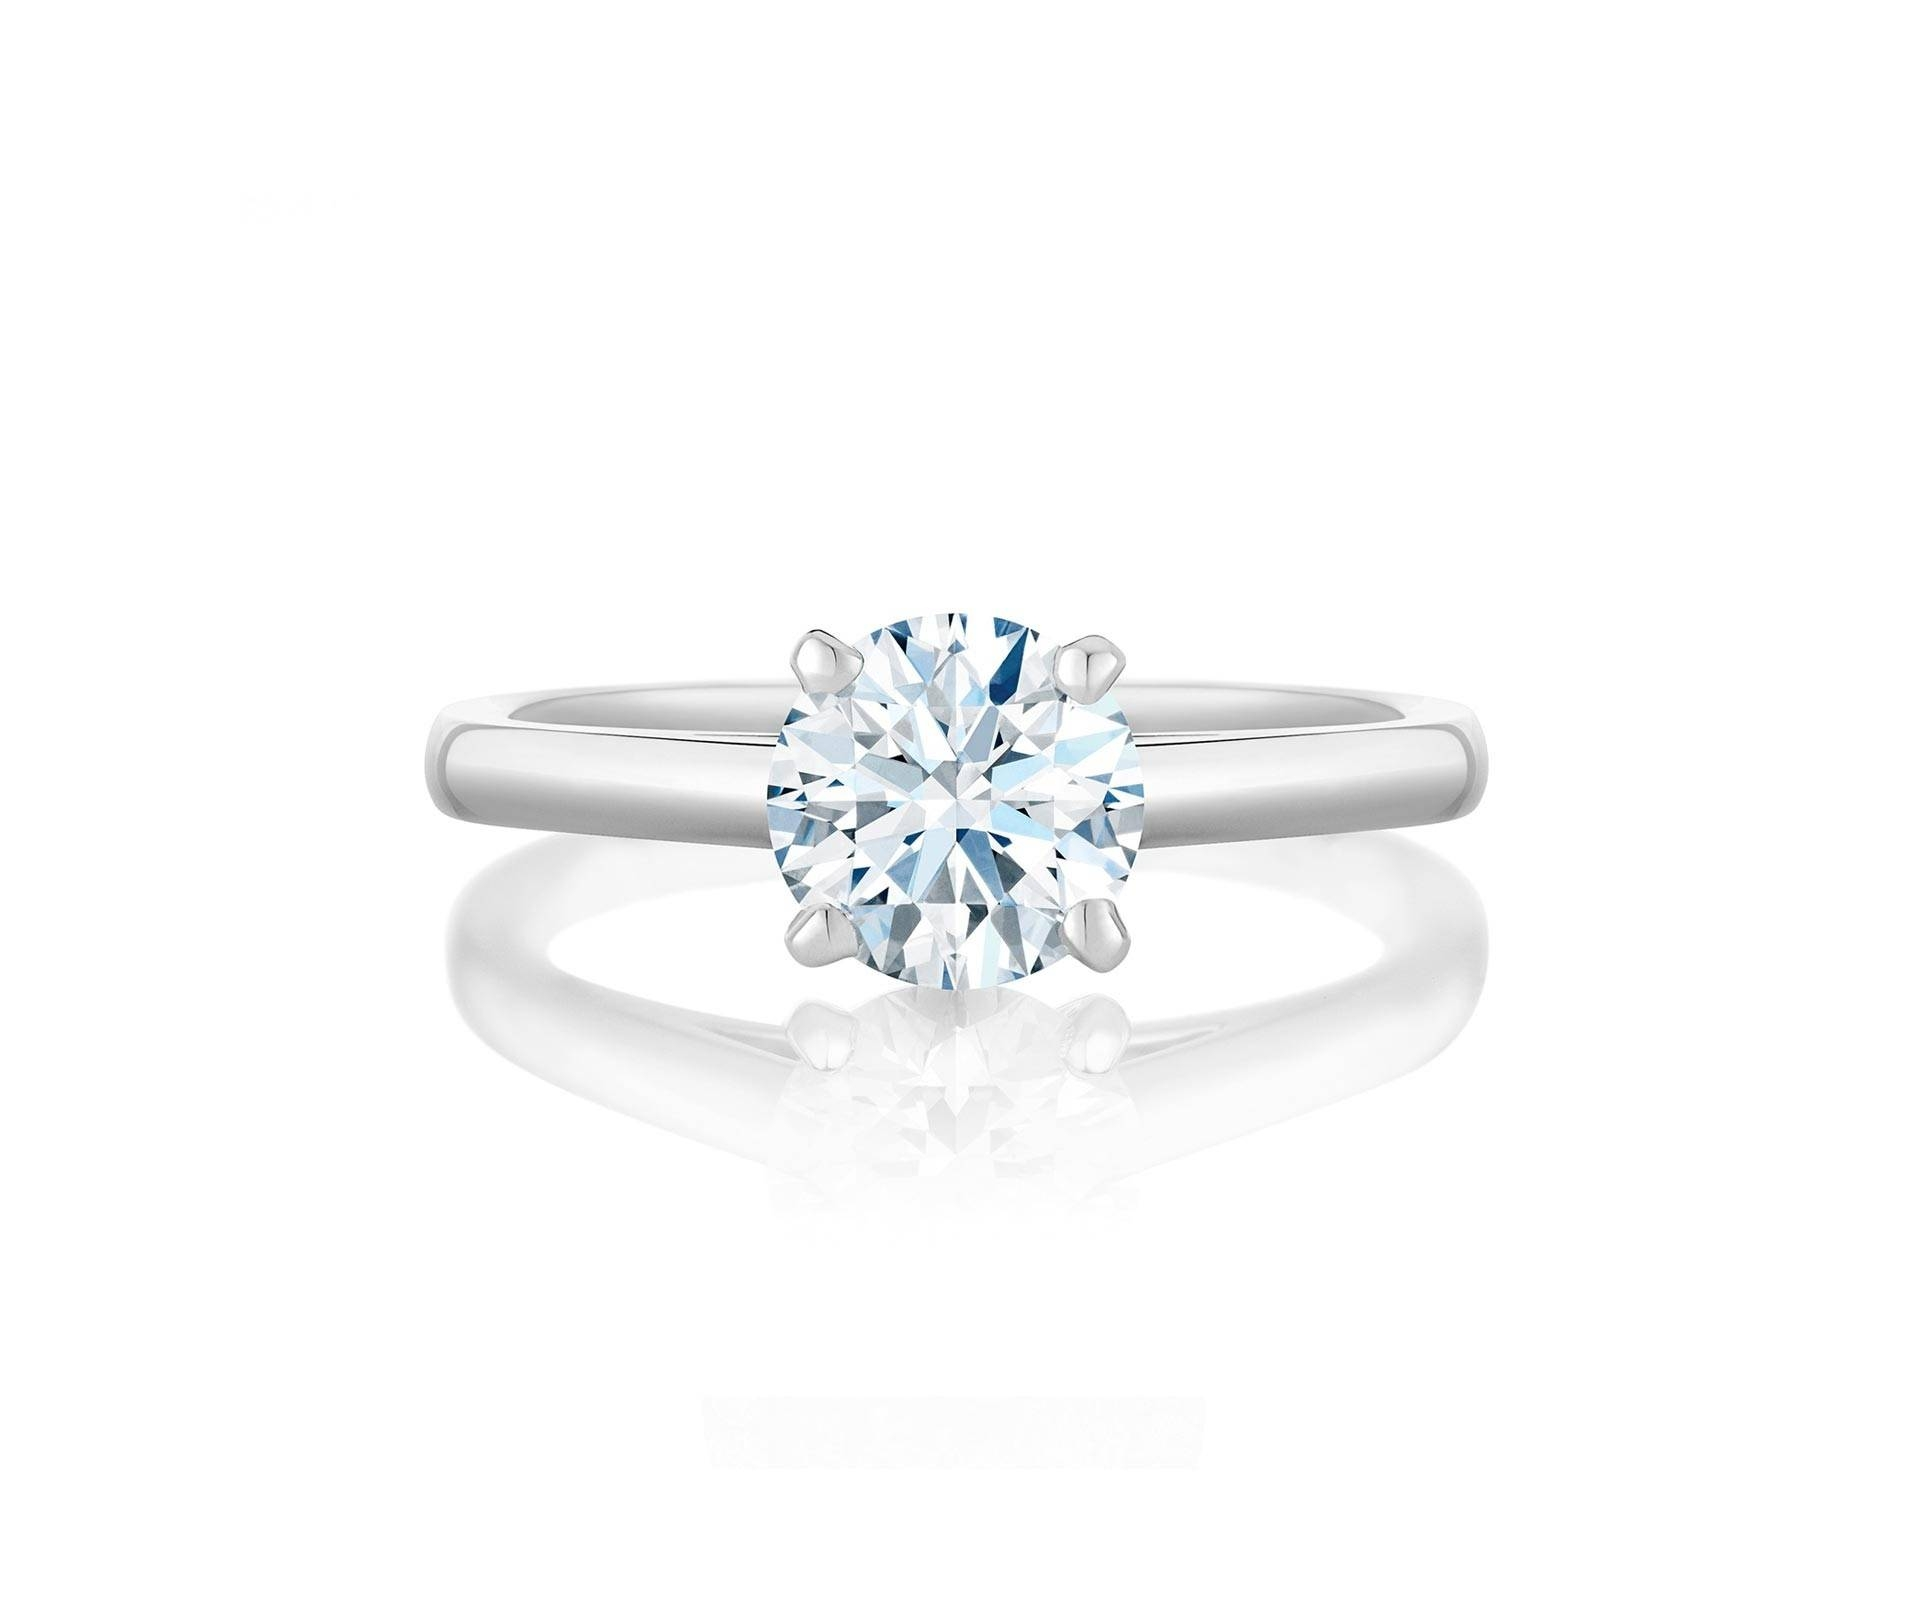 Diamond Engagement Rings & Promise Rings | De Beers Pertaining To Diamonds Engagement Rings (Gallery 5 of 15)